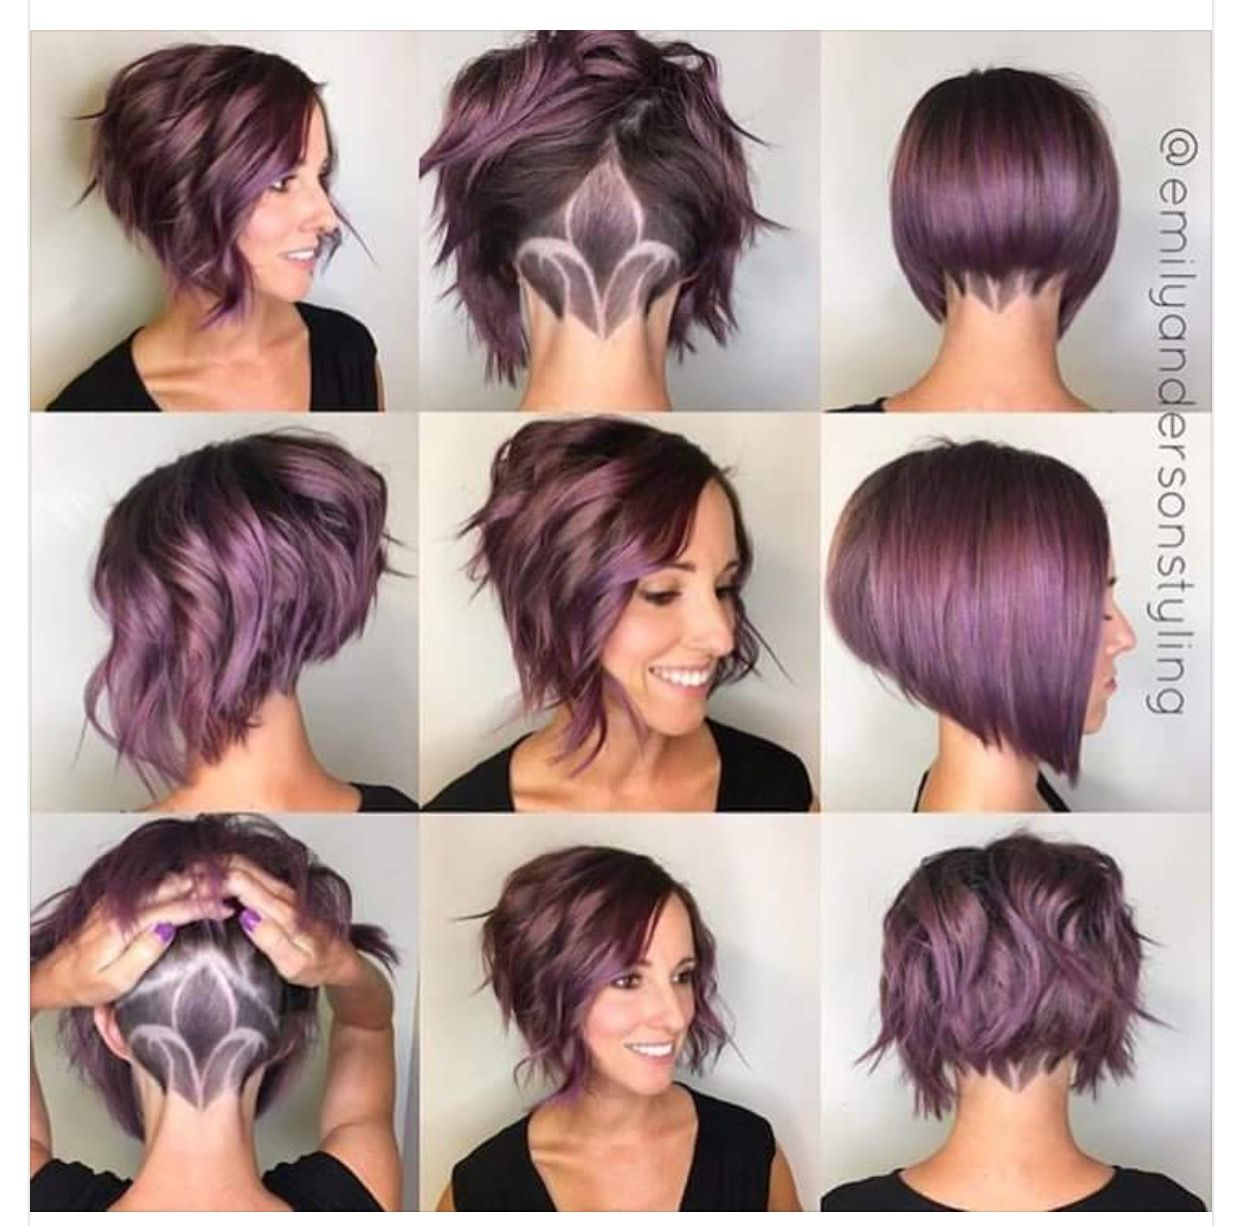 Pin by jamie rayburn on hair pinterest hair style hair cuts and